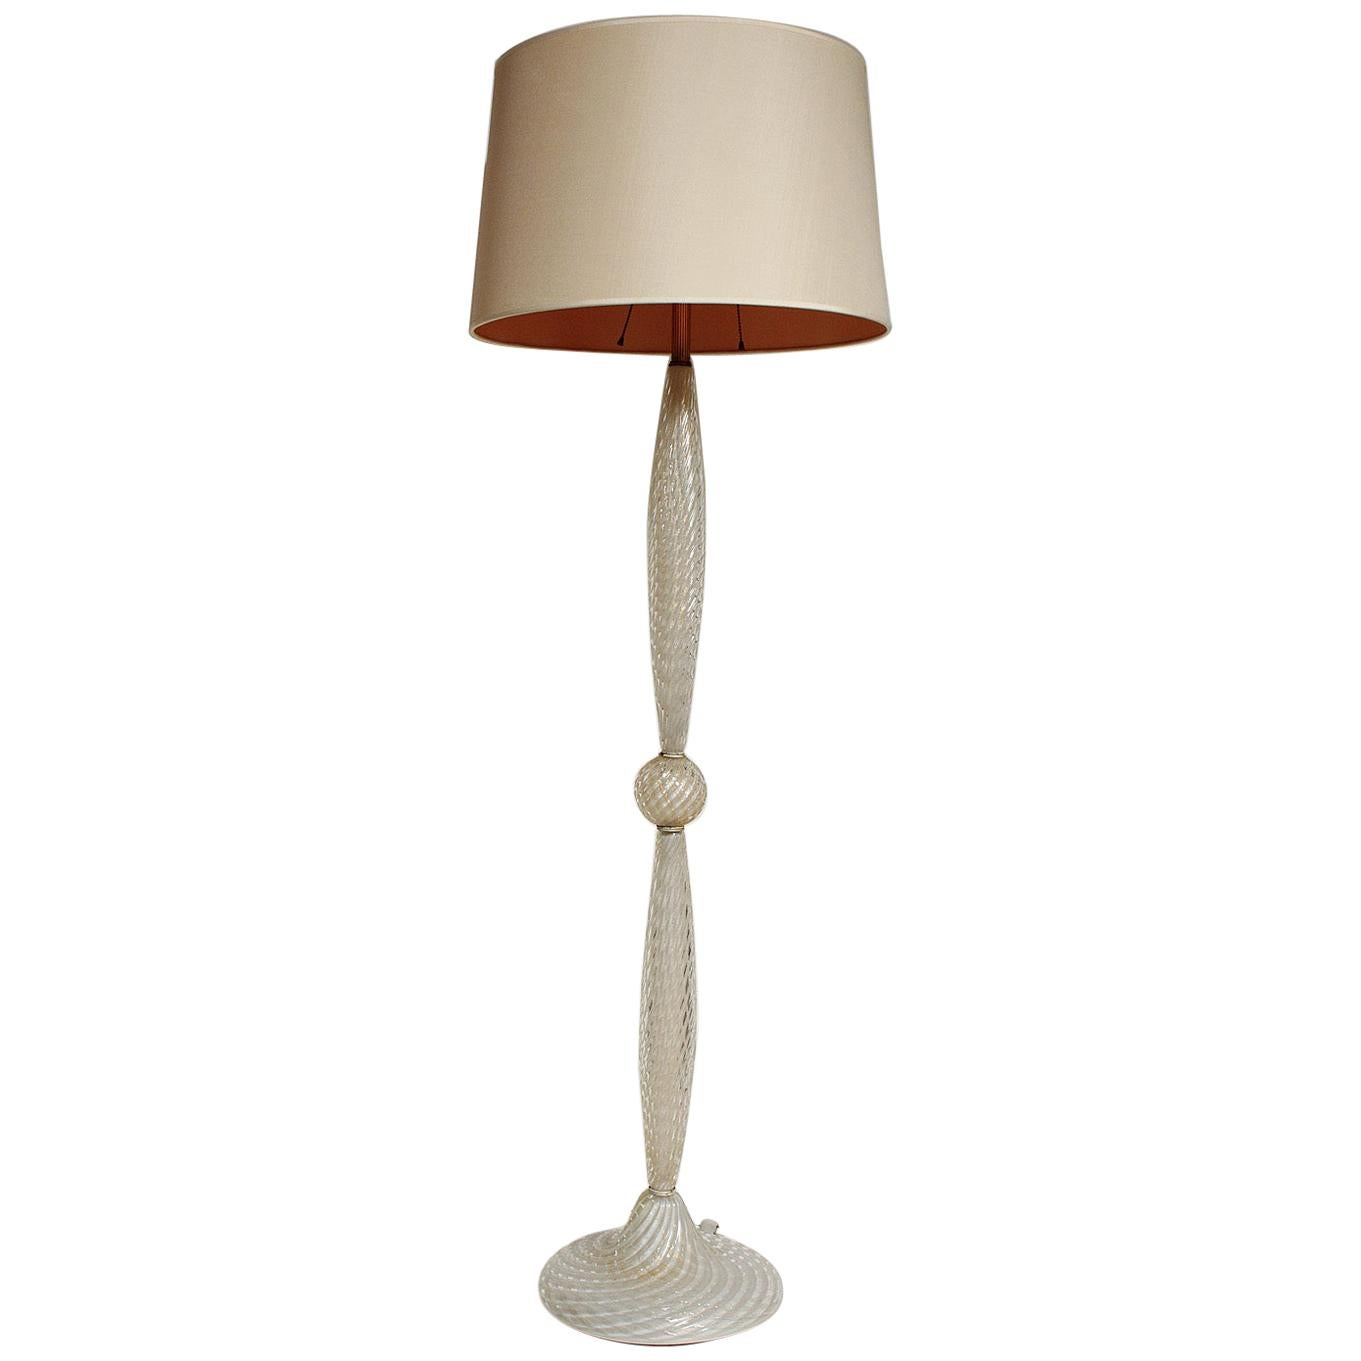 White Cased Murano Glass Floor Lamp with Gold Leaf Inclusions, circa 1950